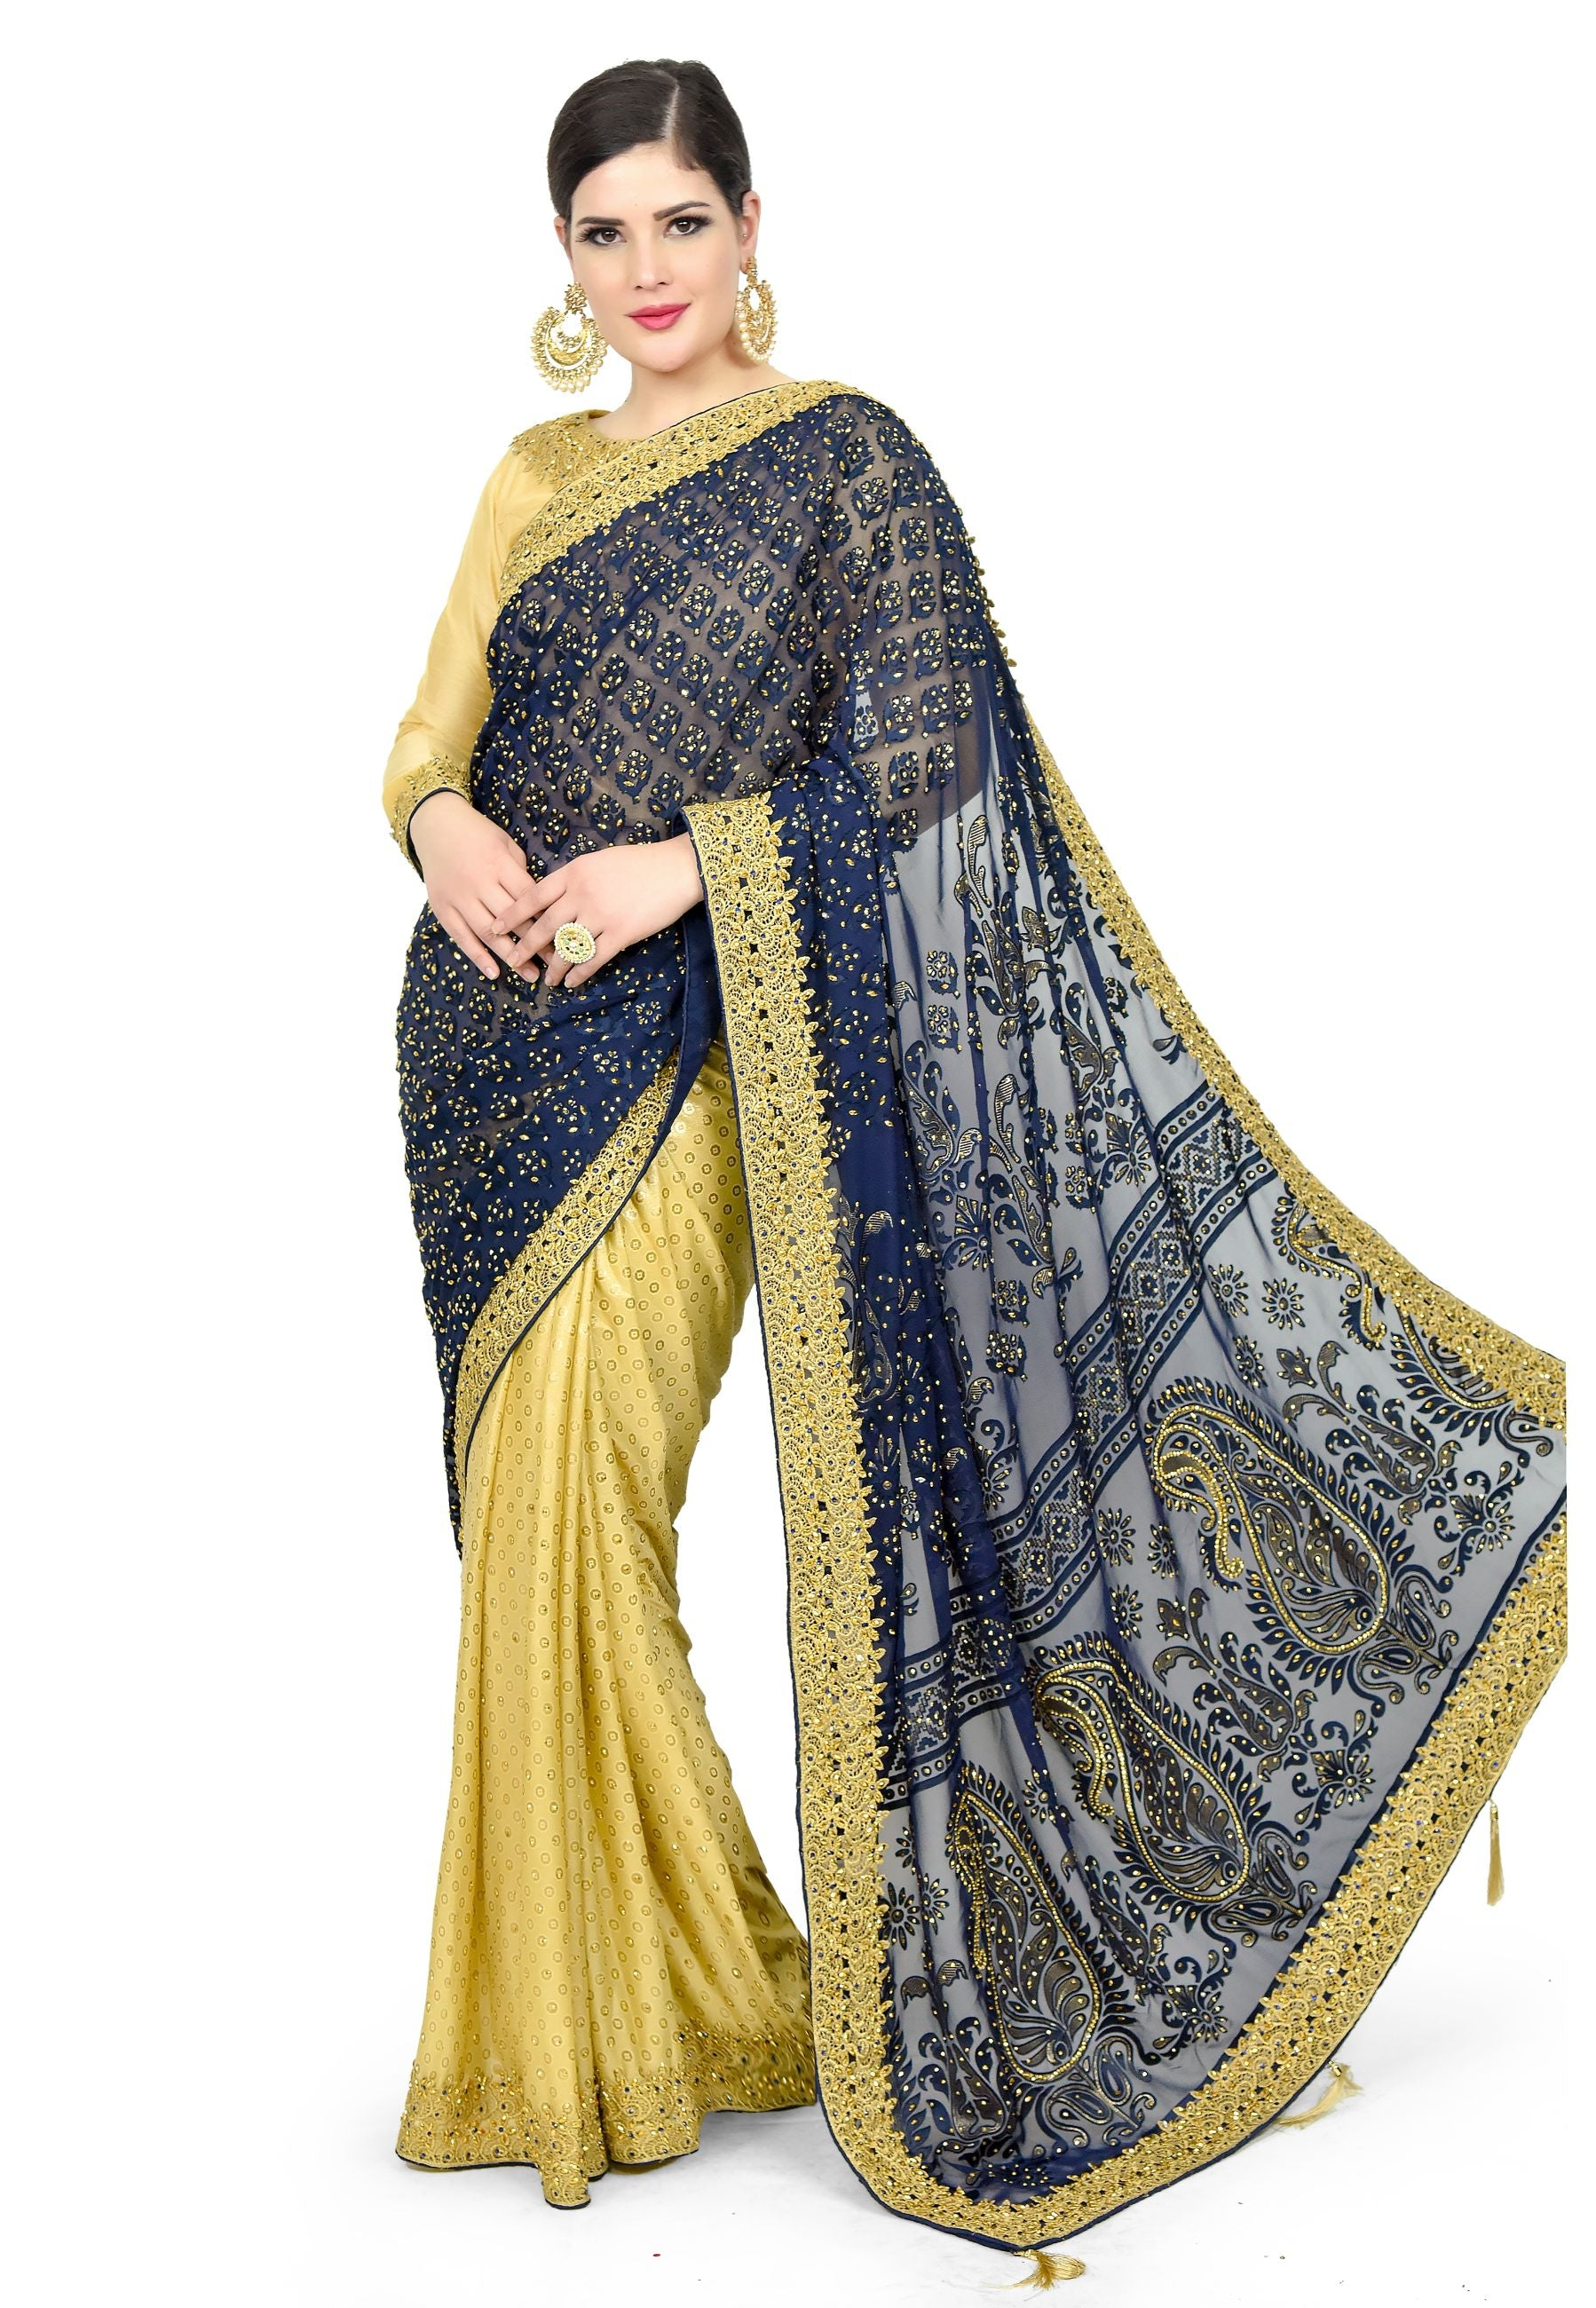 NAVY BLUE SAREE - Chahat